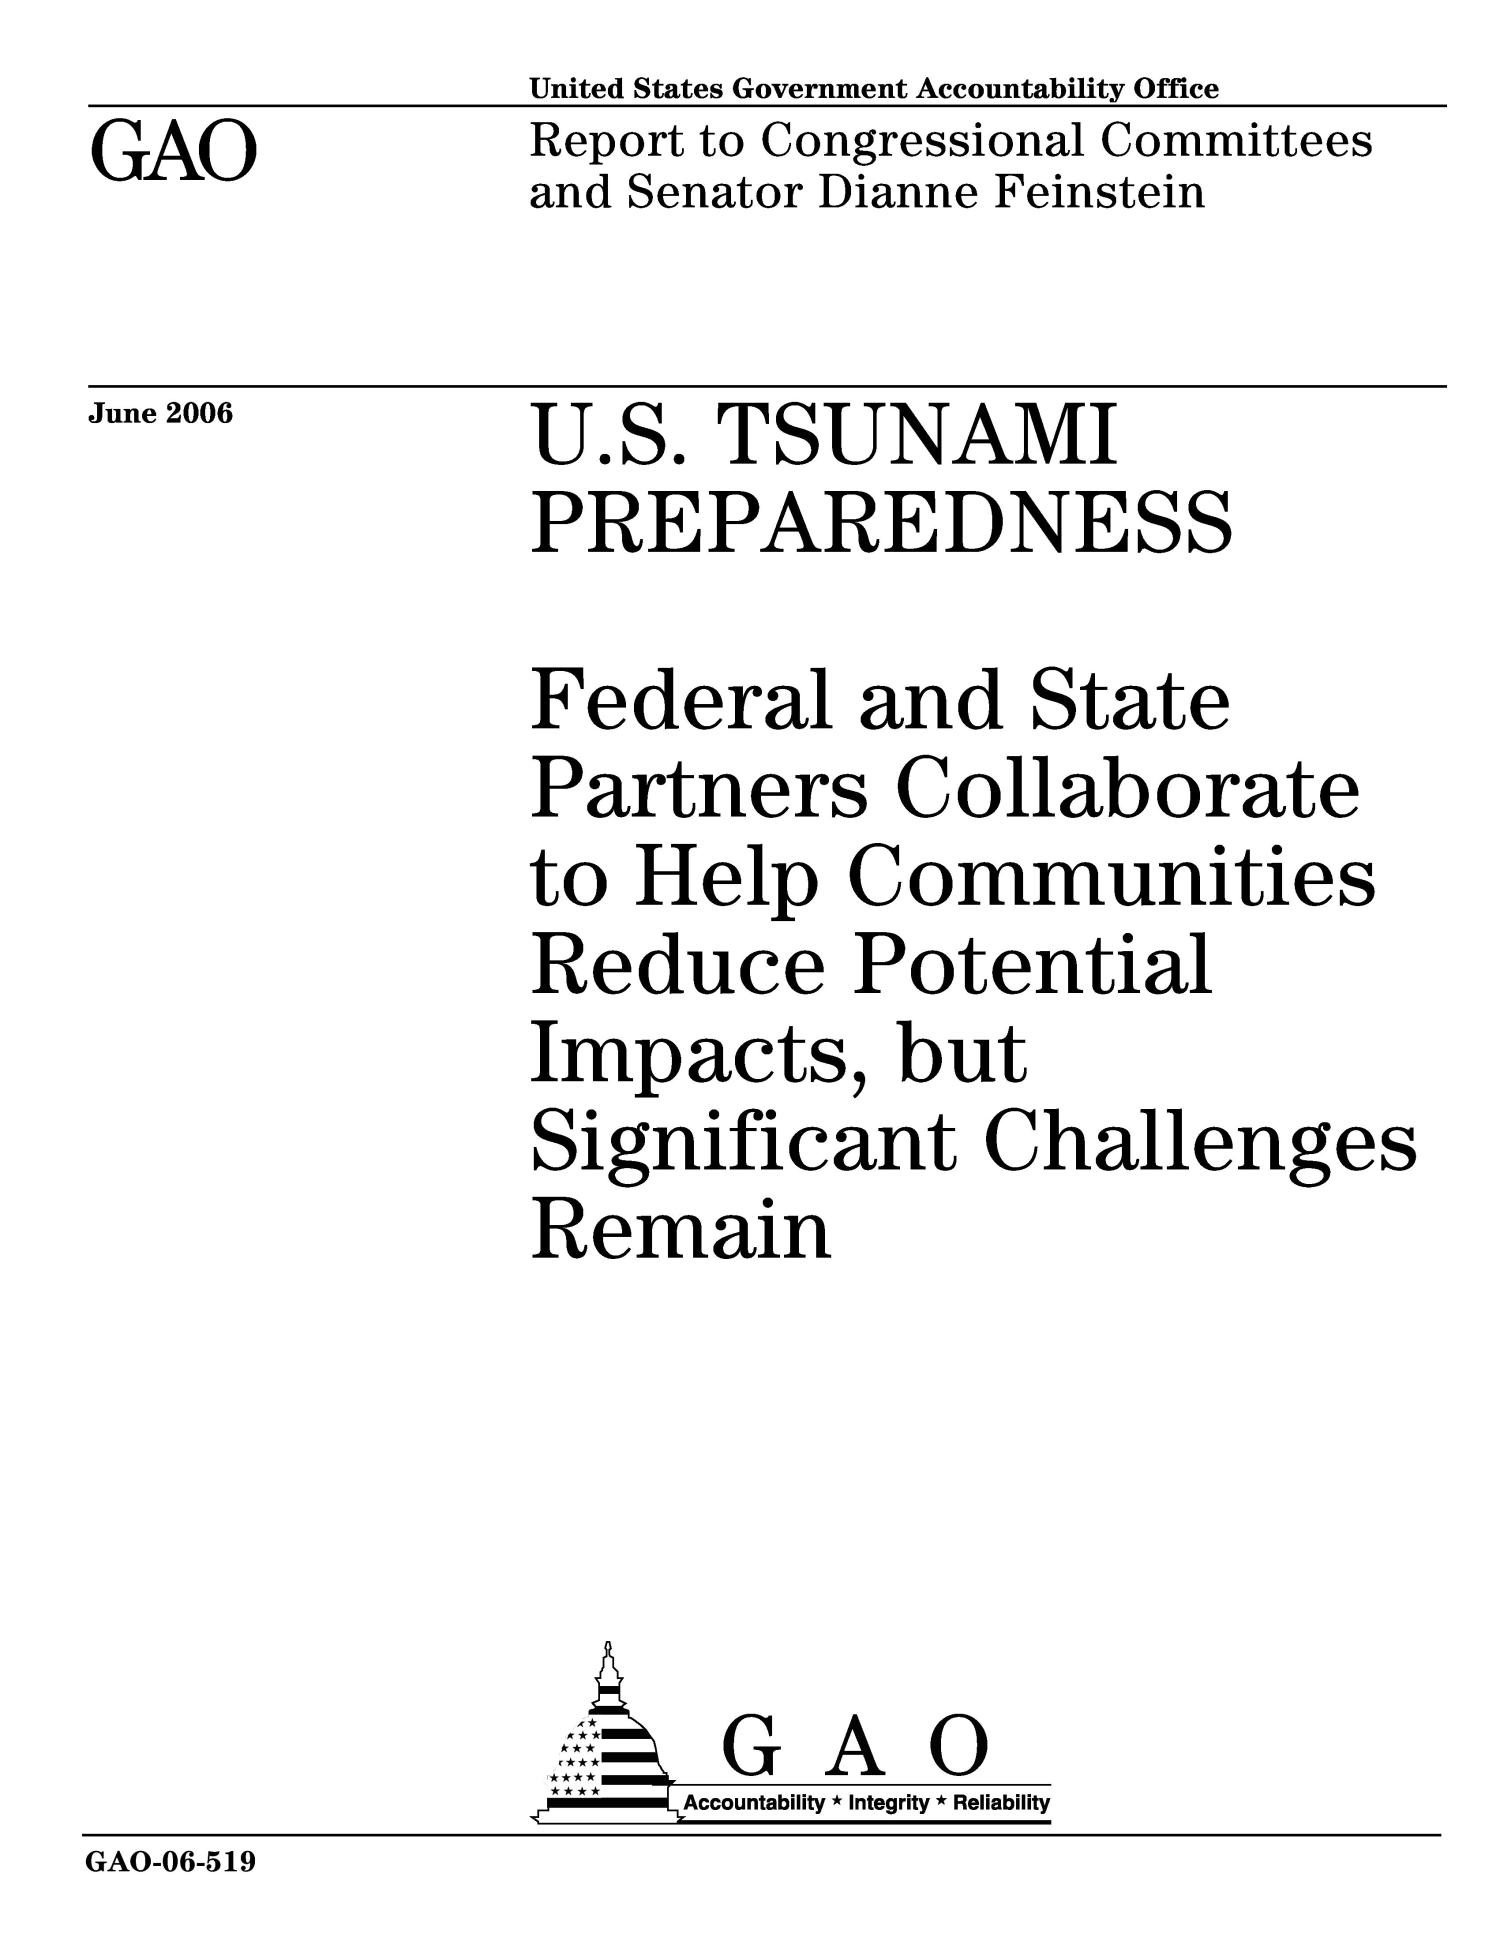 U.S. Tsunami Preparedness: Federal and State Partners Collaborate to Help Communities Reduce Potential Impacts, but Significant Challenges Remain                                                                                                      [Sequence #]: 1 of 65